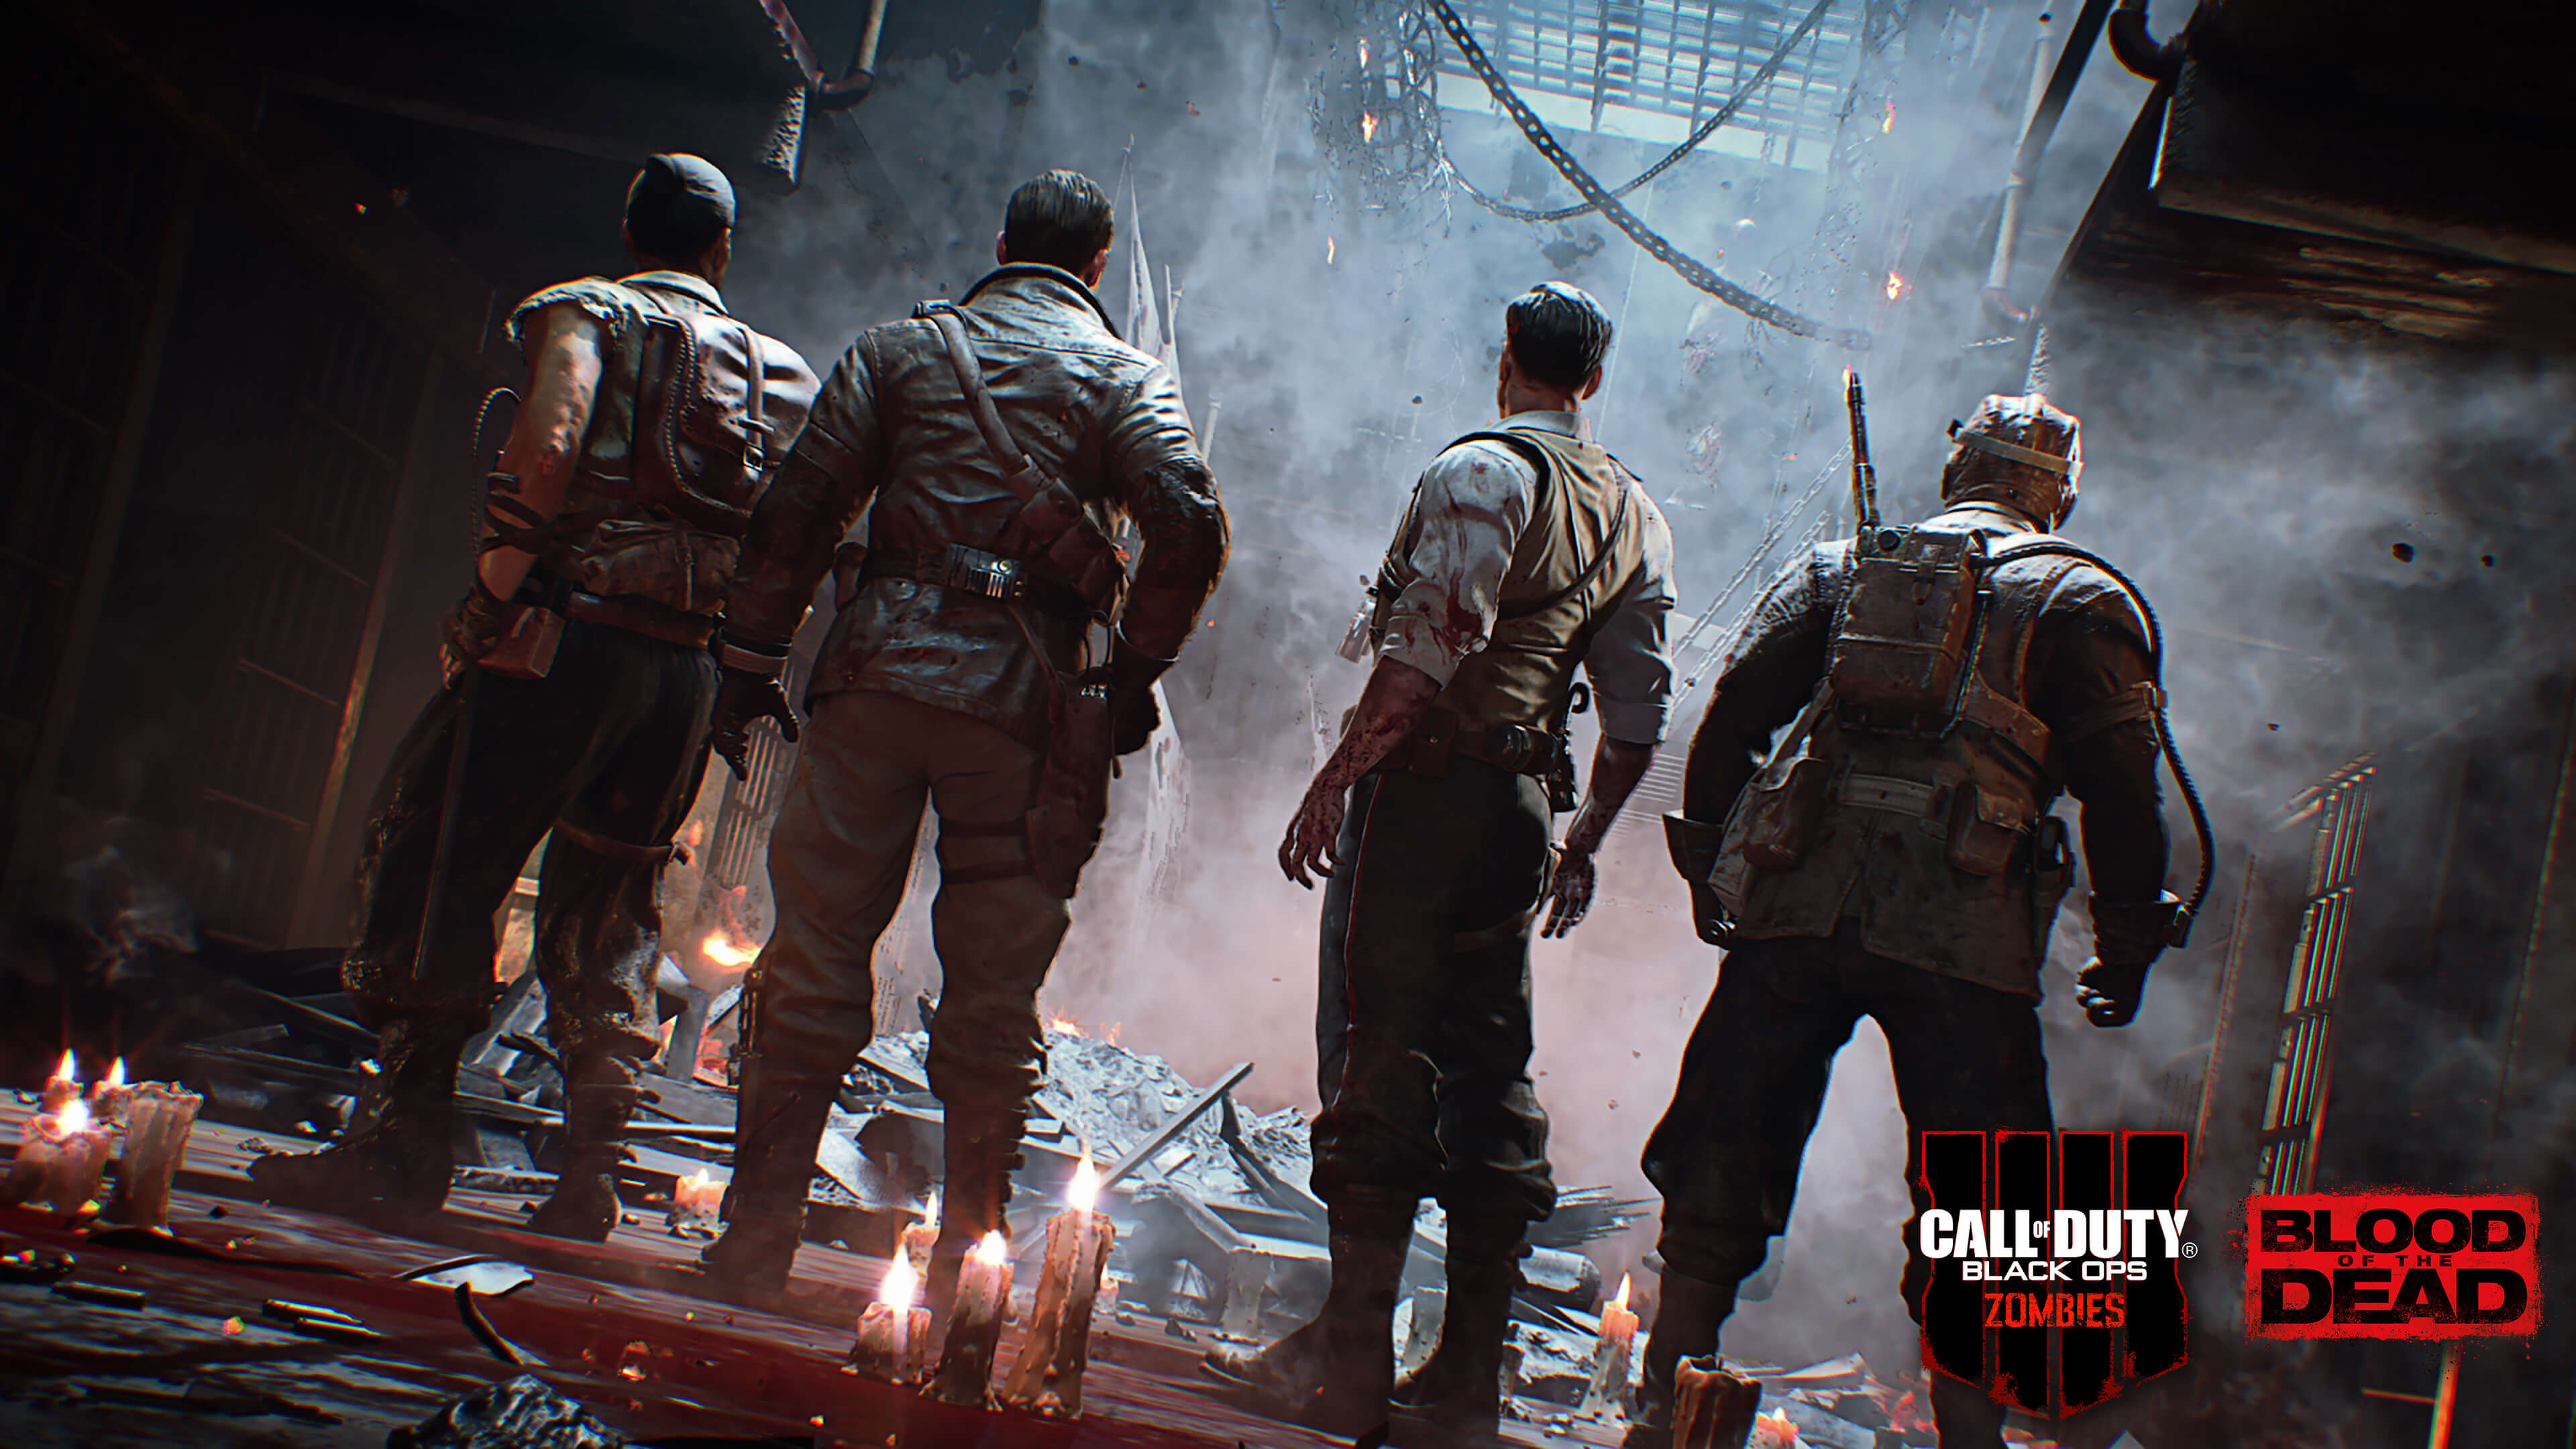 Free Download Call Of Duty Black Ops 4 Zombies Hd Wallpaper 65565